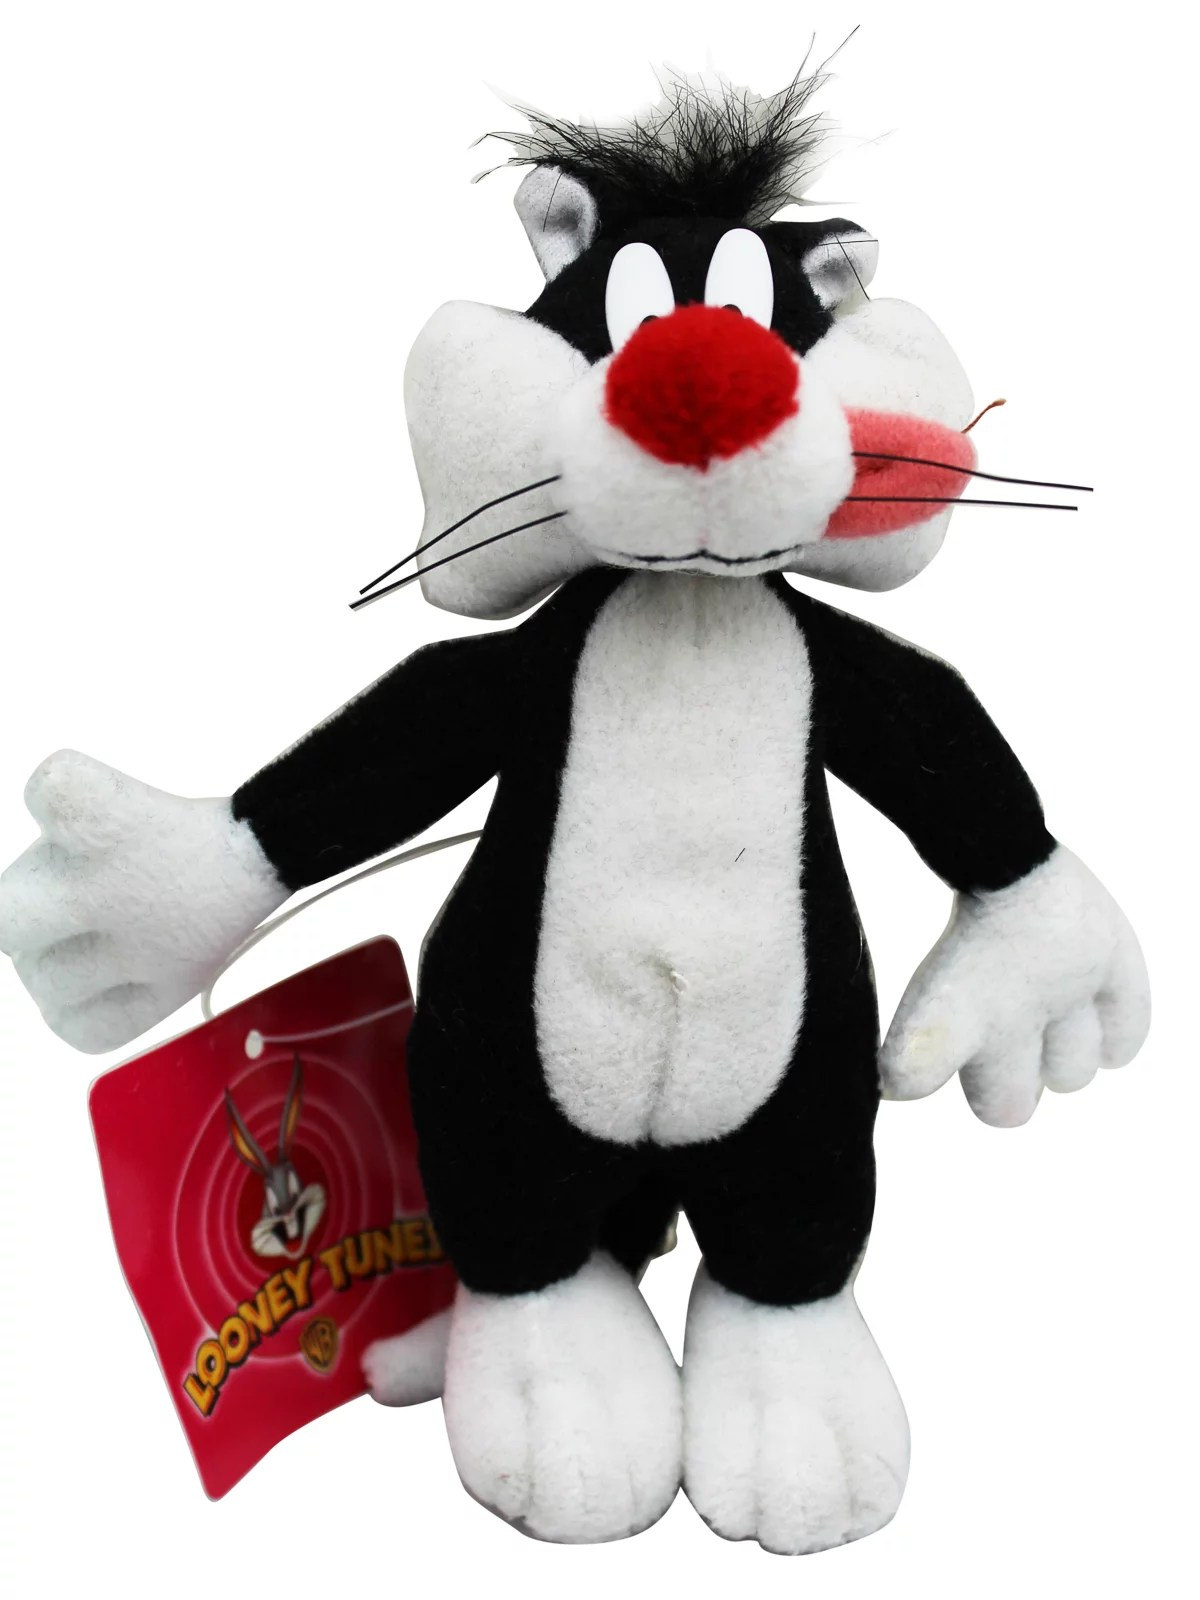 Cat Plush Toy Sylvester The Cat Miniature Kids Plush Toy With Secret Pocket 5in